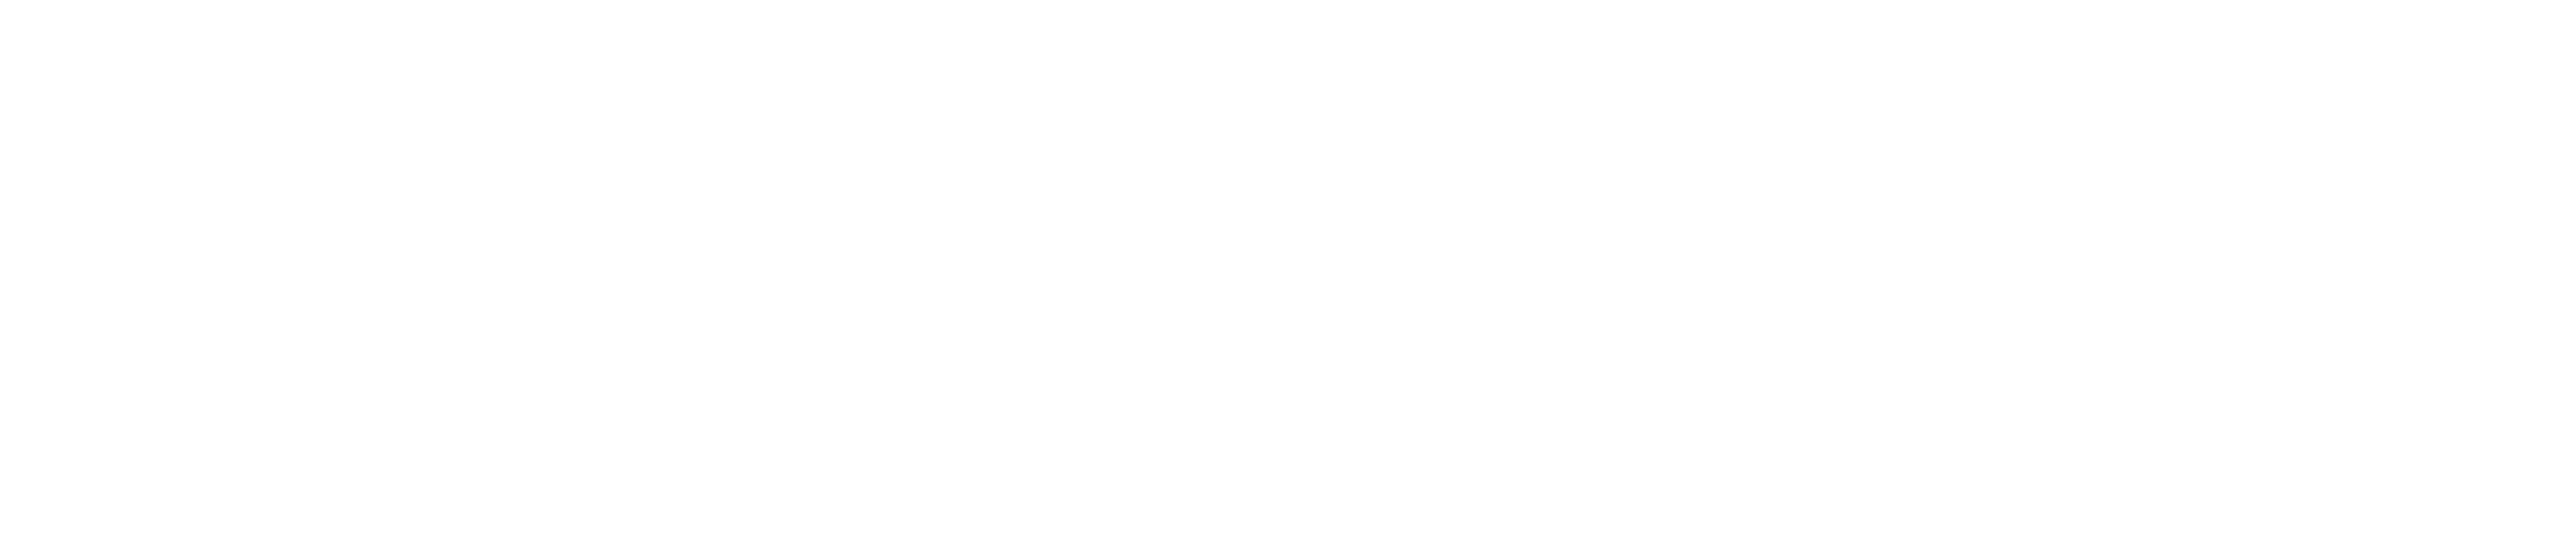 Sitewide Sales White Logo as PNG